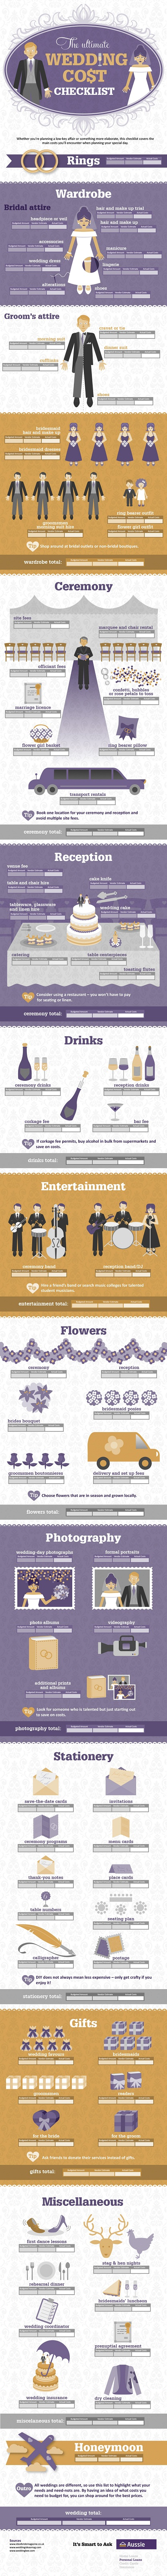 The Wedding Expensives Checklist Infographic